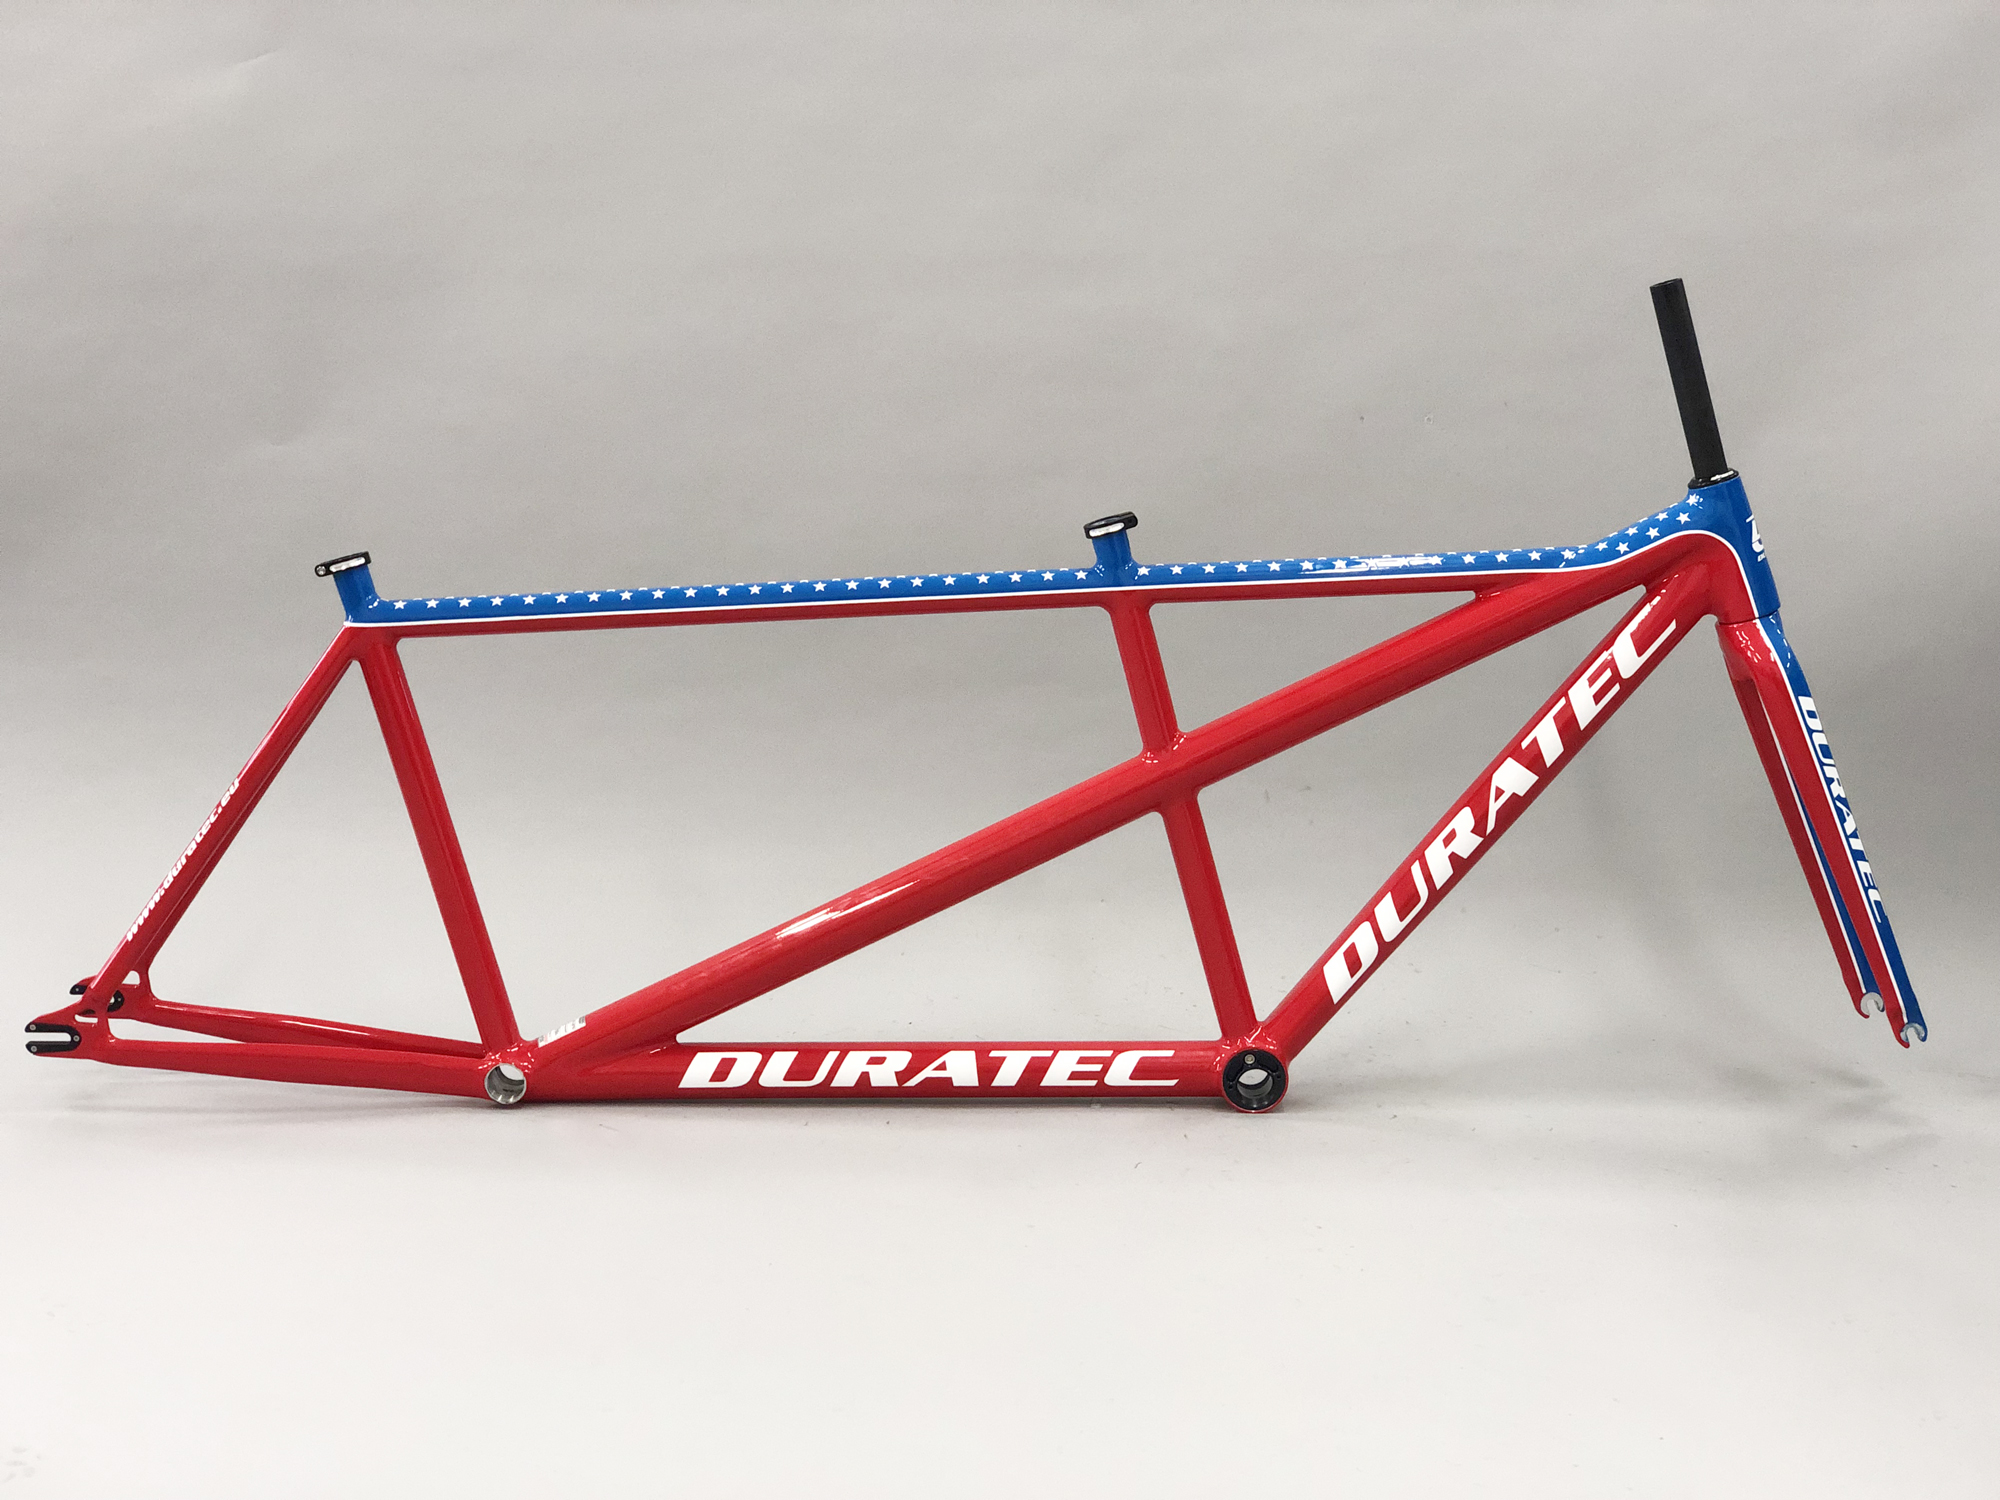 Bright red tandem frame with DURATEC emblazoned on it. Across the top white stars on a royal blue background. The frame has no saddles, pedals, handbars, gears or chains attached